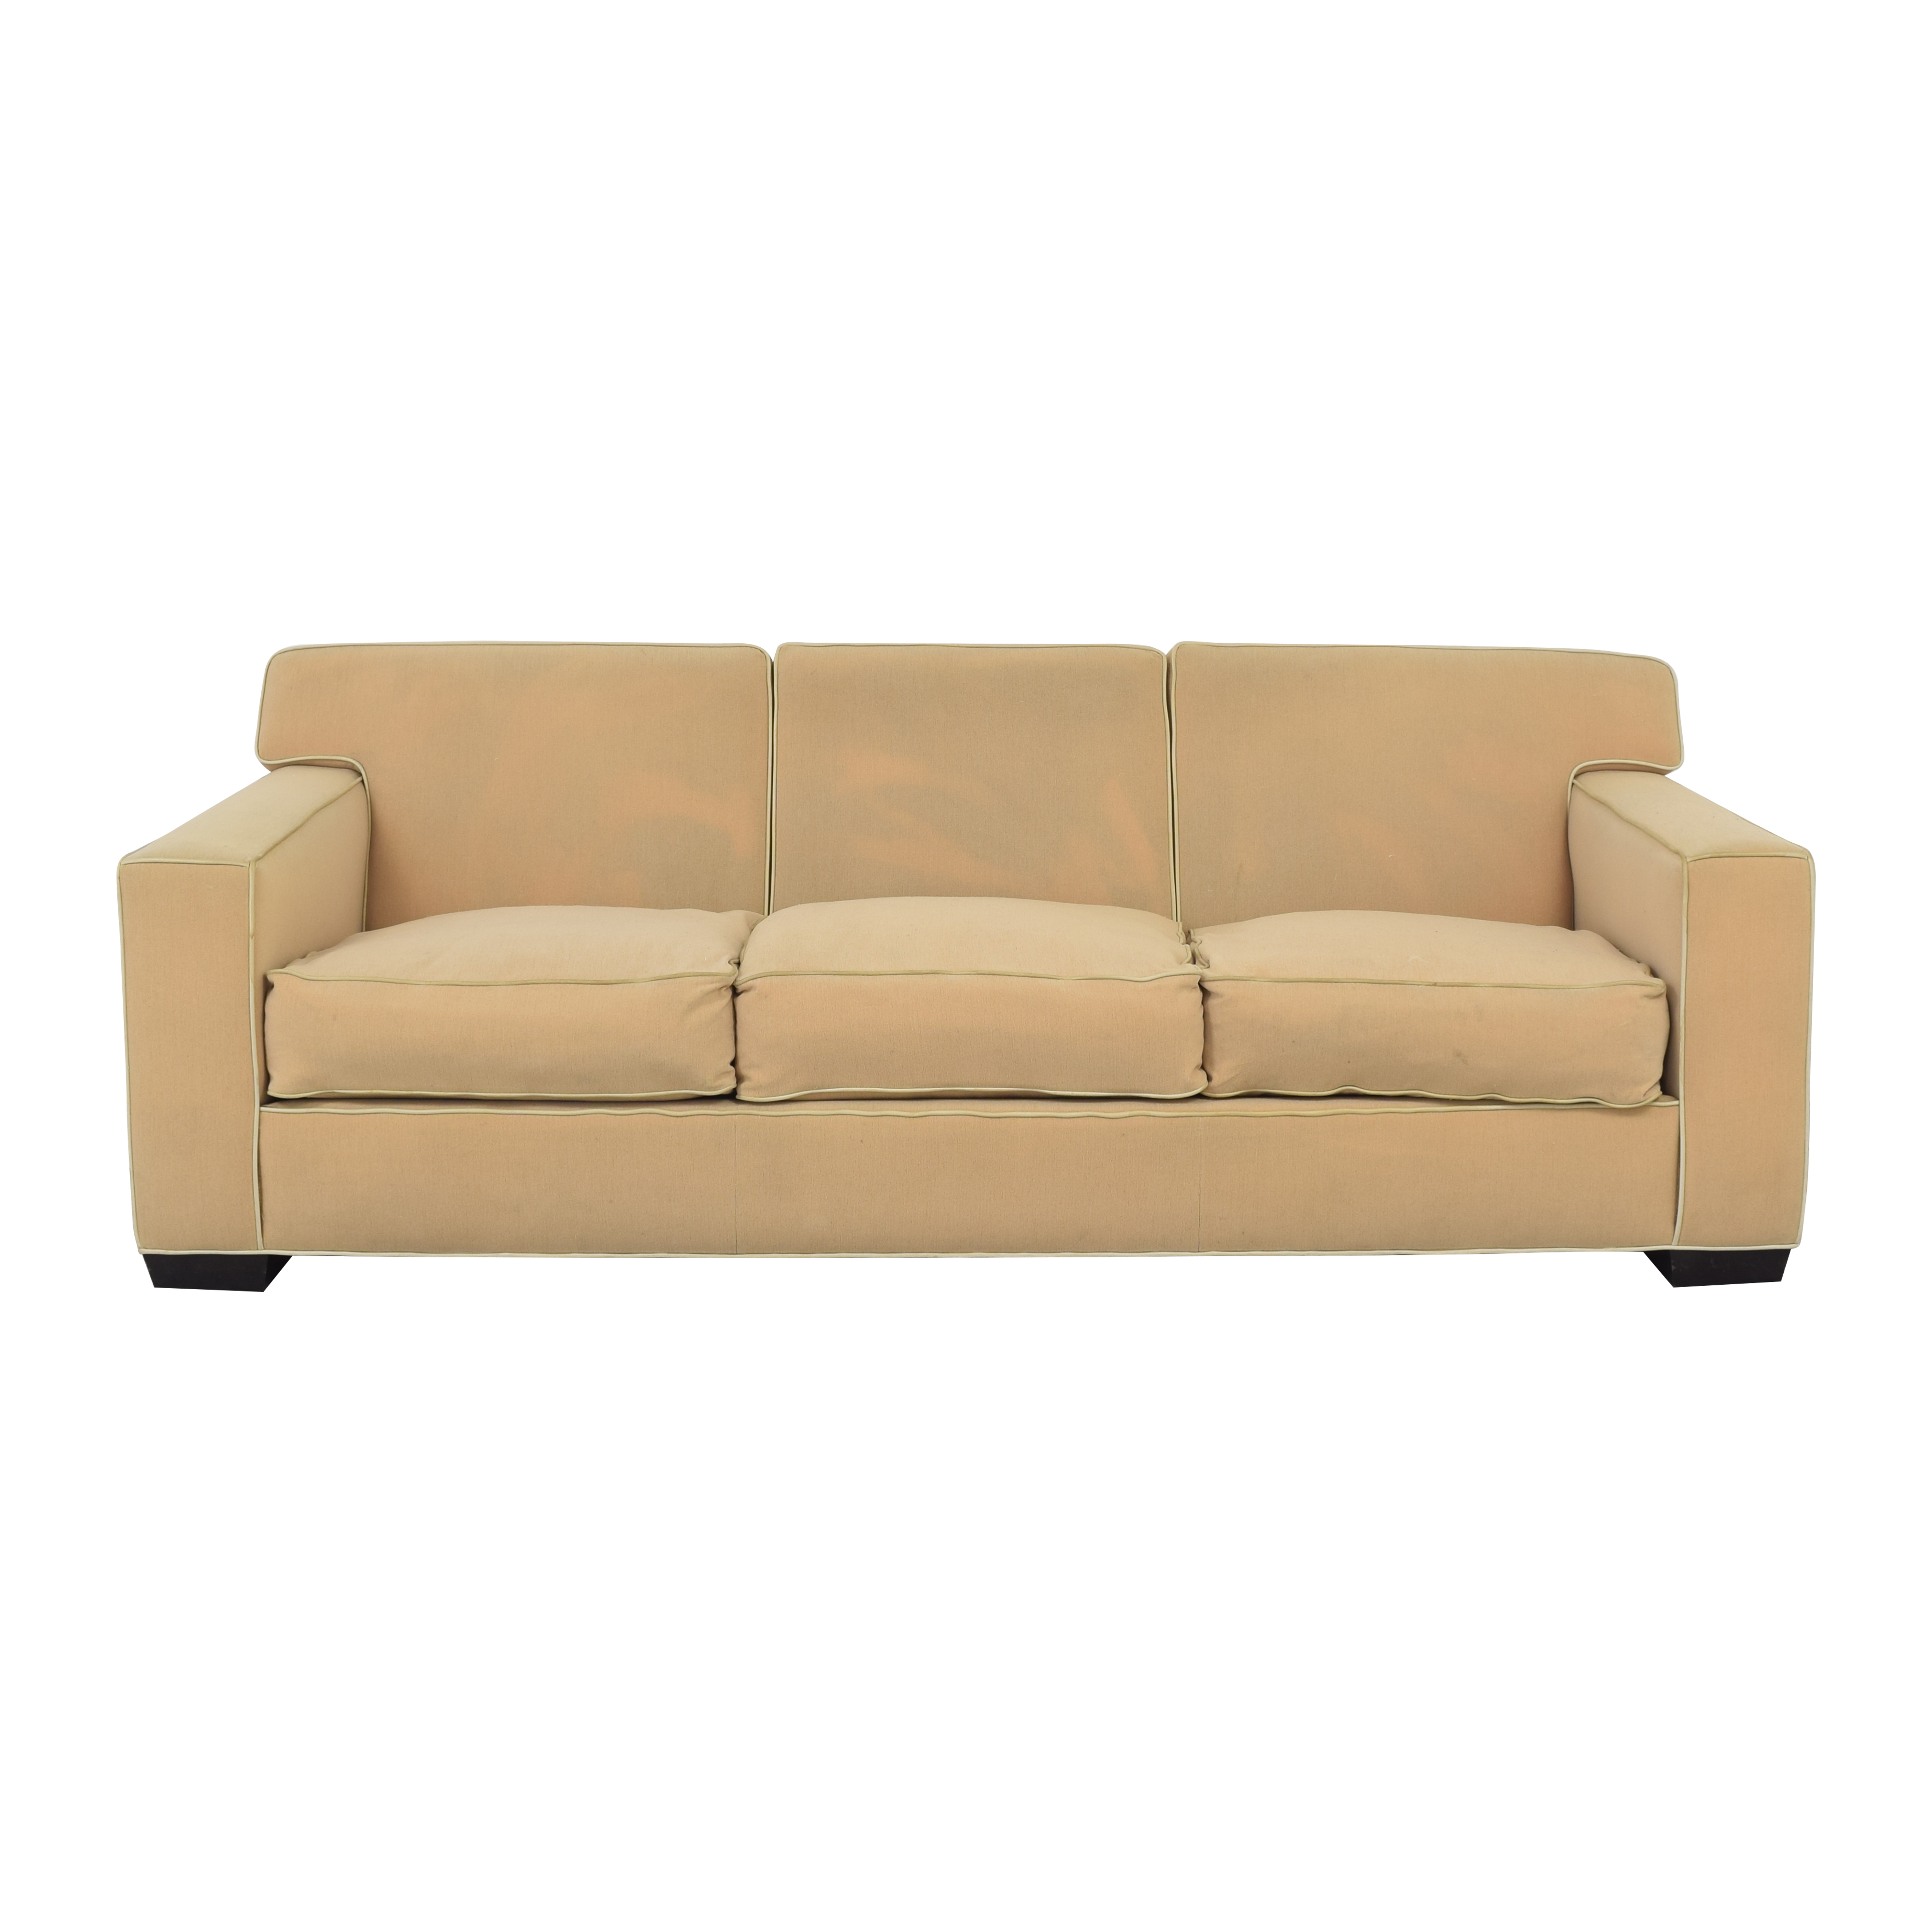 buy Mattaliano Frank Three Seat Sofa Mattaliano